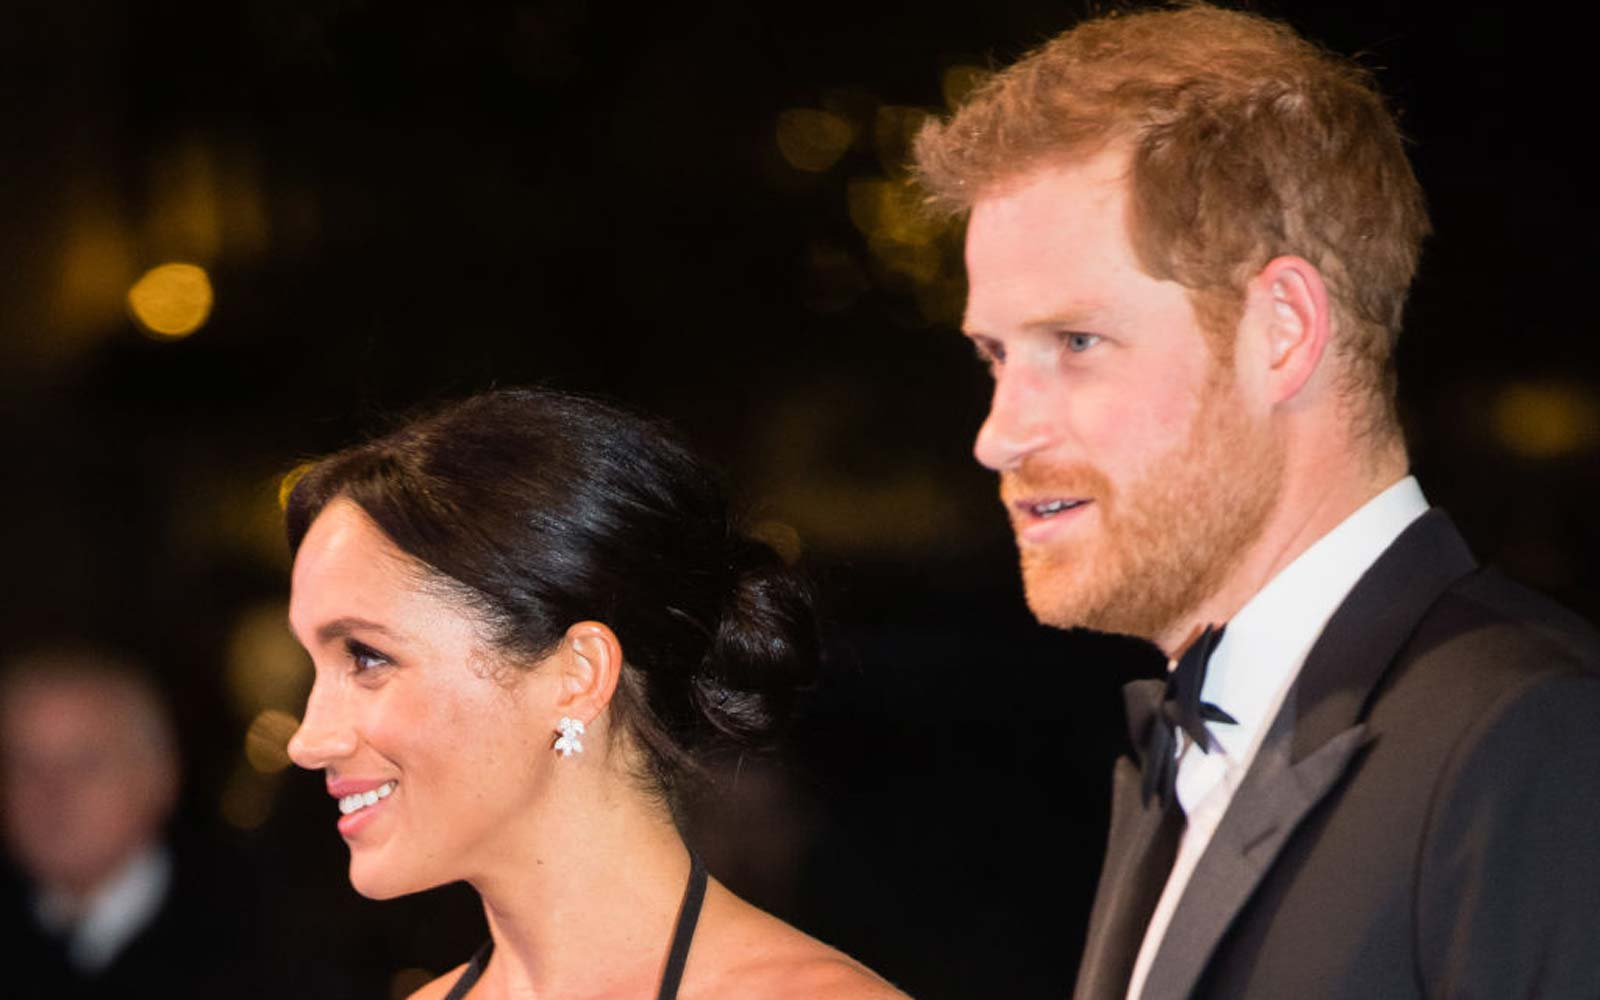 Meghan Markle and Prince Harry Will Spend Their First Valentine's Day As Newlyweds Apart